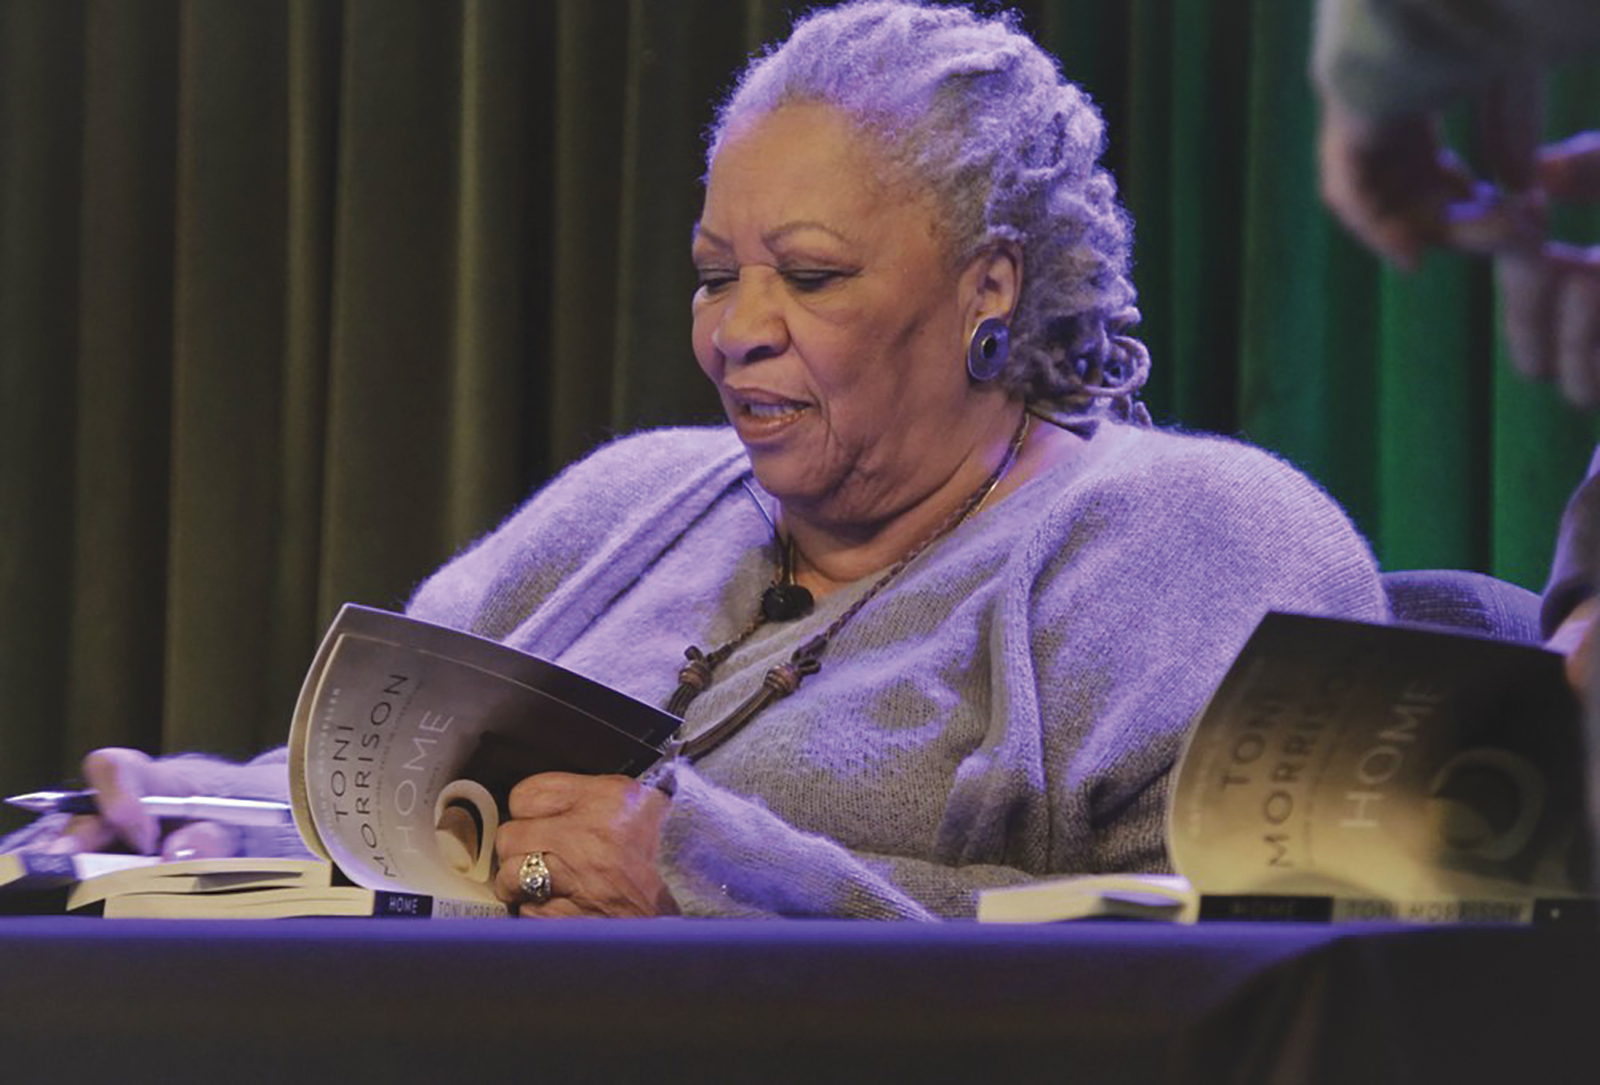 """FILE - In this Feb. 27, 2013 file photo, author Toni Morrison signs copies of her latest book """"Home,"""" during Google's online program series, Authors At Google, in New York. The Nobel Prize-winning author has died. Publisher Alfred A. Knopf says Morrison died Monday, Aug. 5, 2019 at Montefiore Medical Center in New York. She was 88. (AP Photo/Bebeto Matthews, File)"""